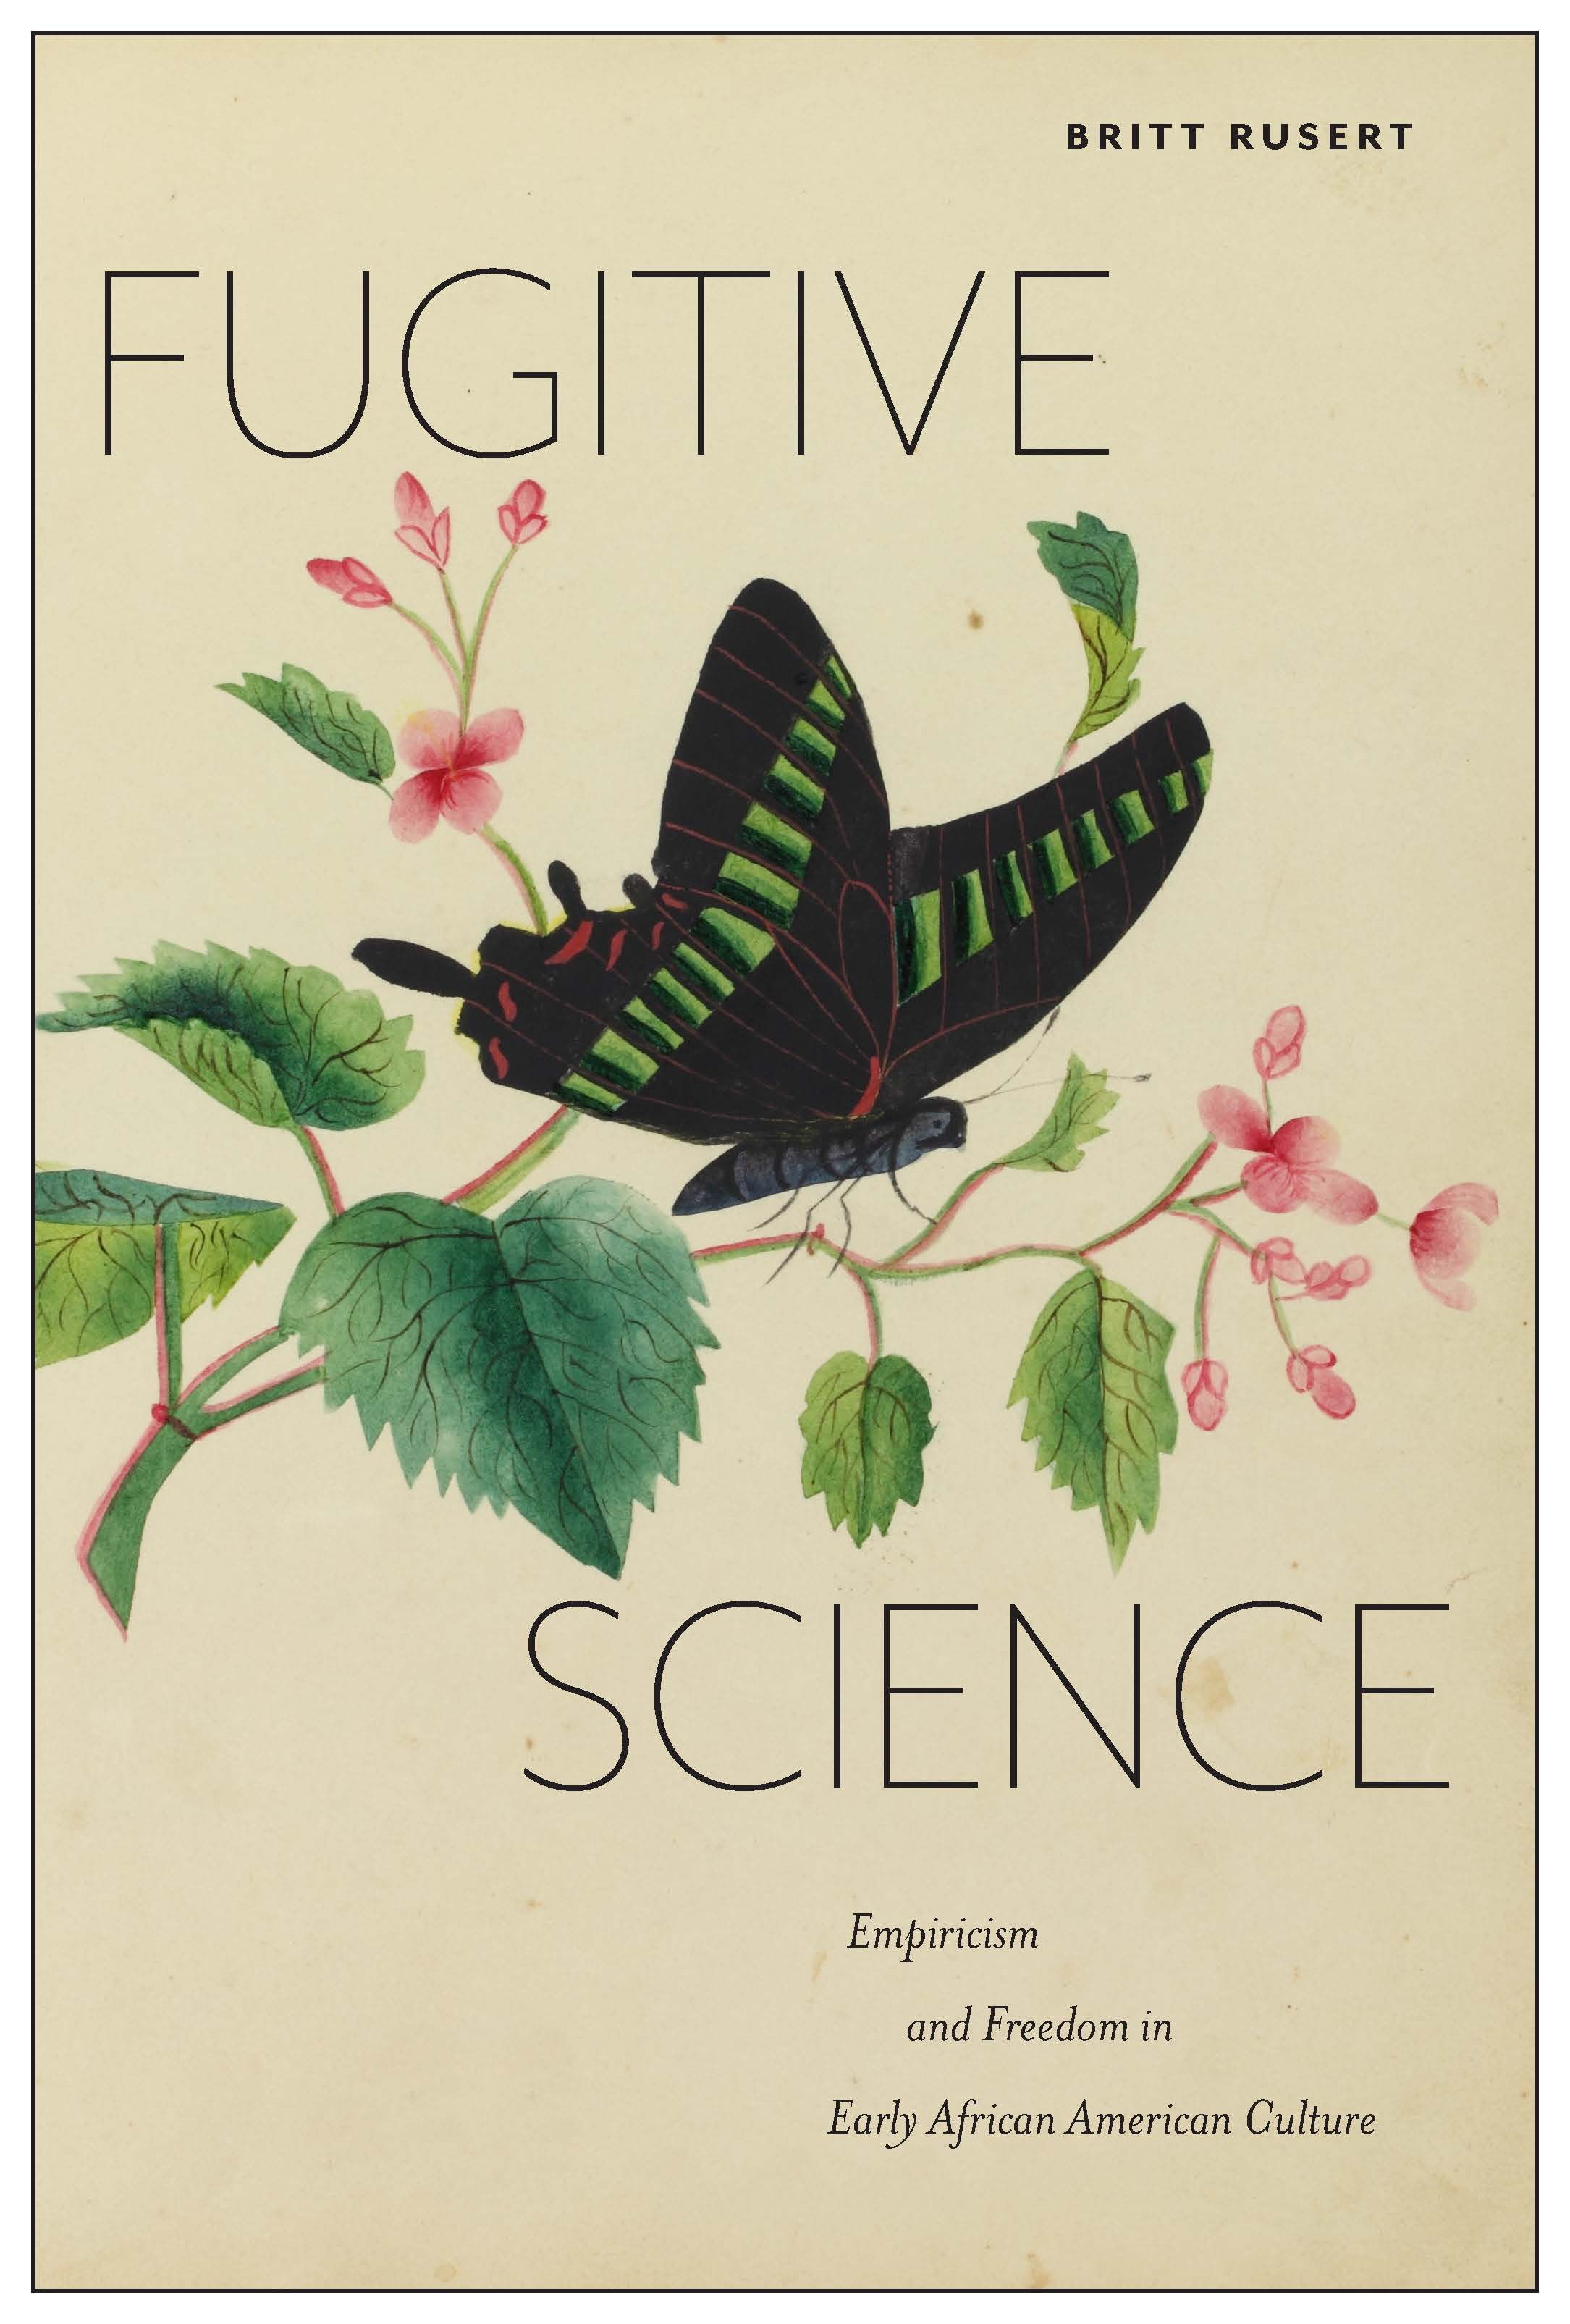 Picture of book cover for Fugitive Science